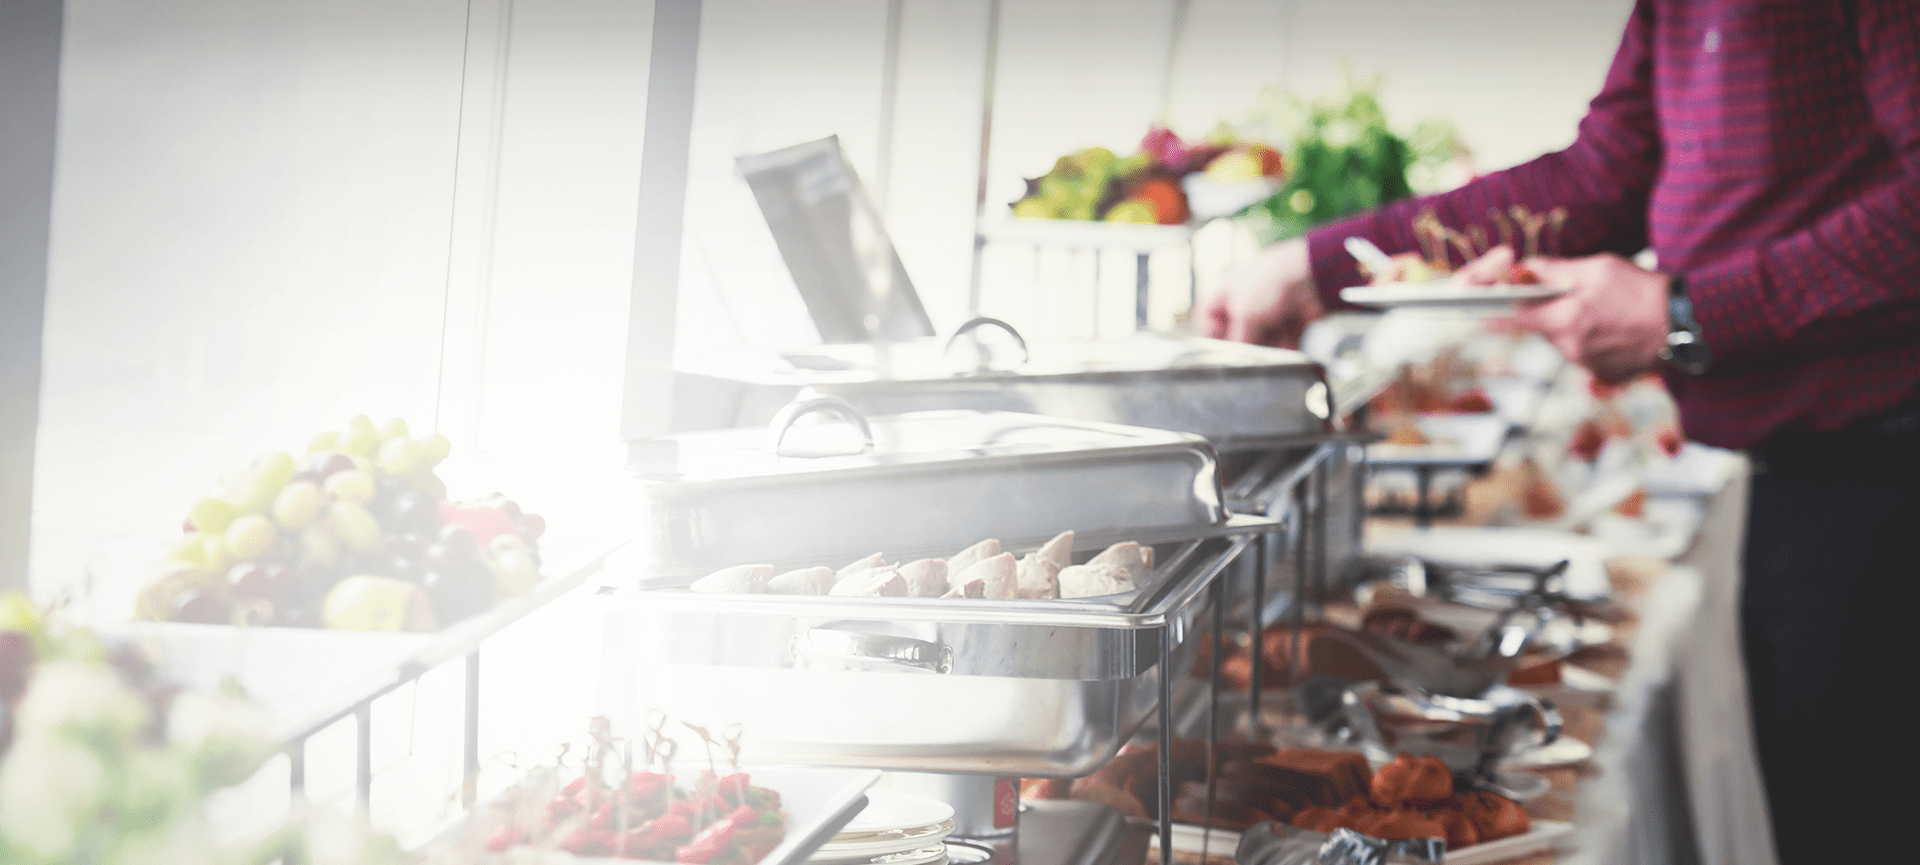 Your Preferred Caterer